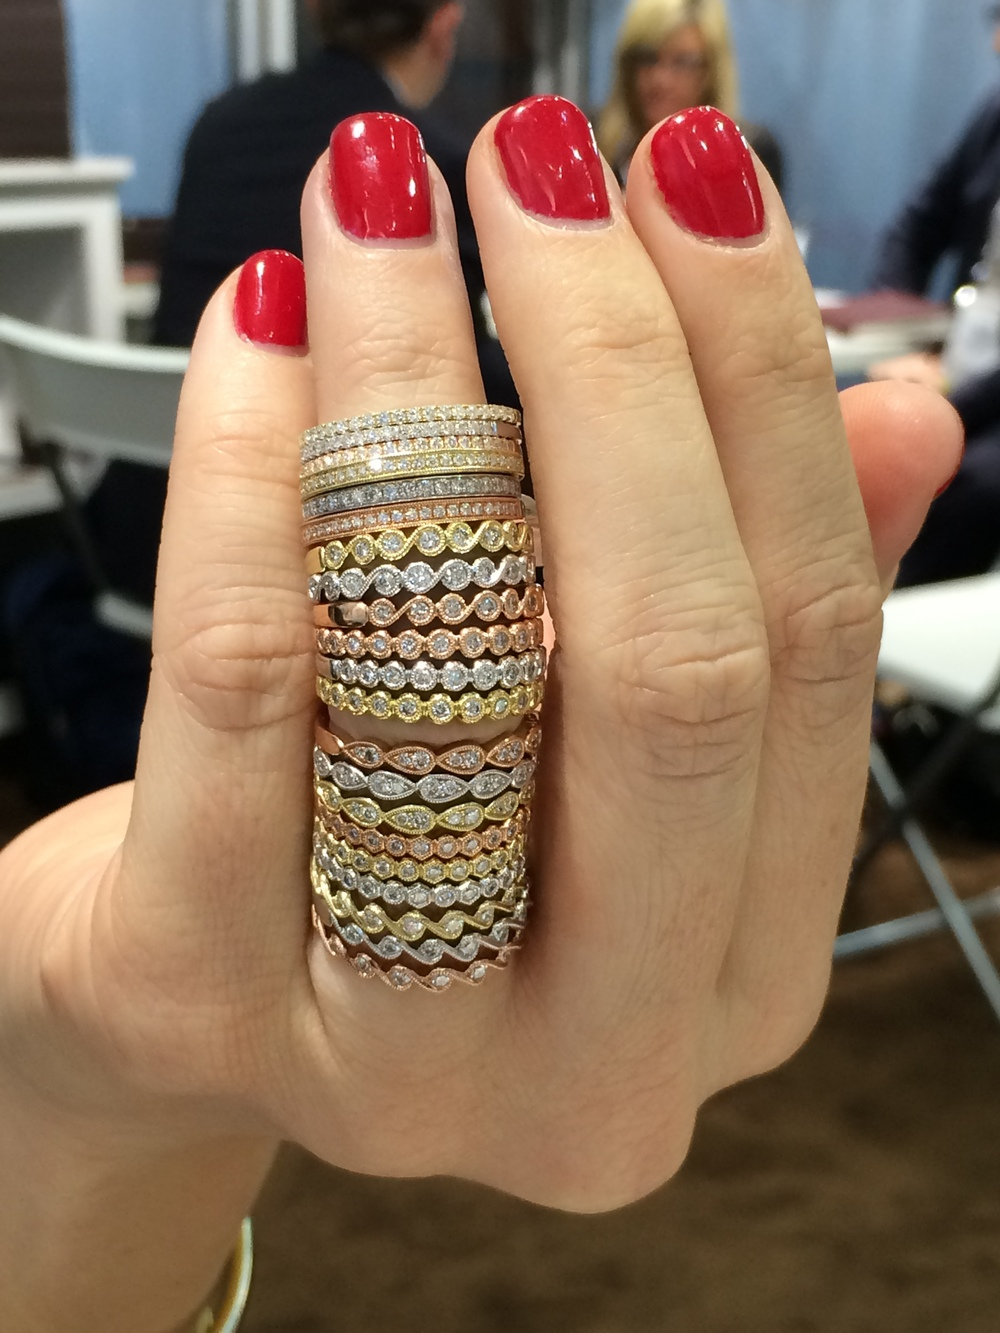 Now...time to play dress up with an assortment of different types of fine jewelry pieces! From rose, to yellow and finally white gold...it's hard to pick which one we love more! These assortment of stackable rings are brought to you by Sylvie Collection!